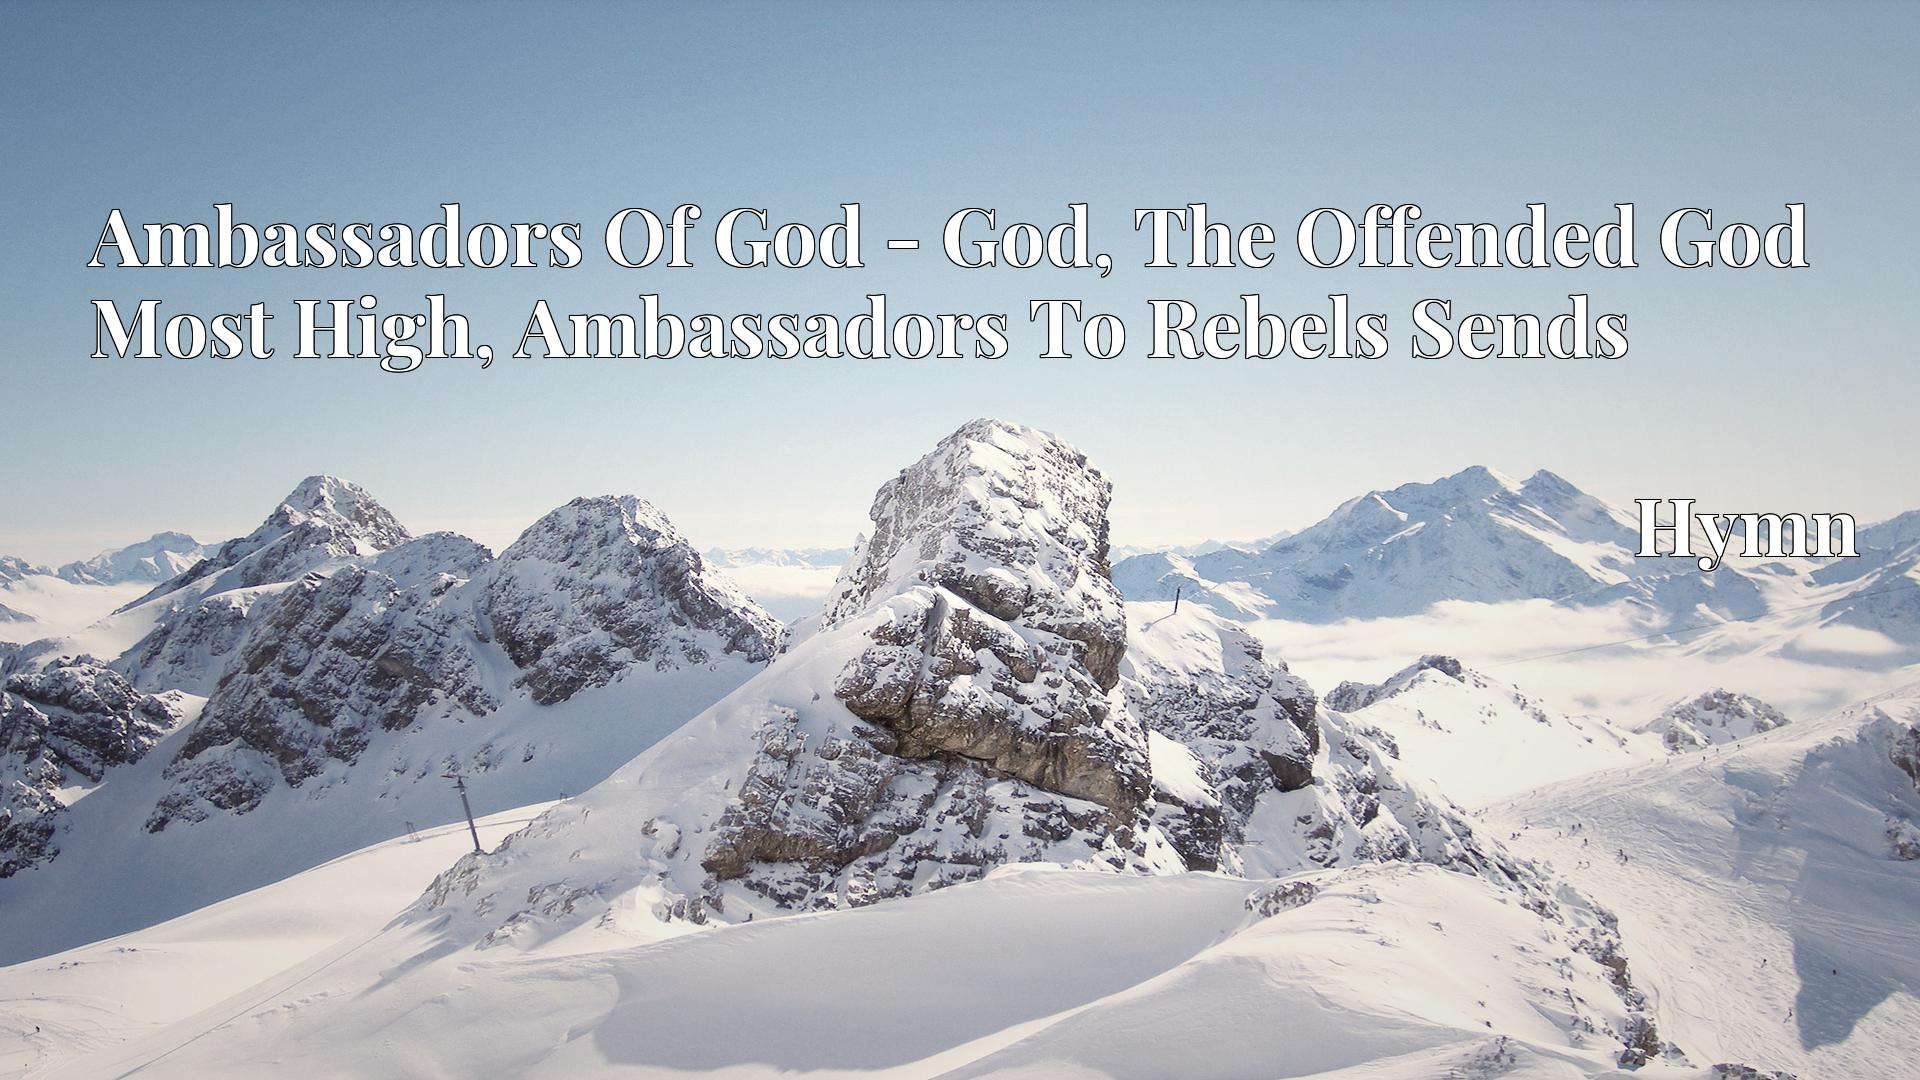 Ambassadors Of God - God, The Offended God Most High, Ambassadors To Rebels Sends - Hymn